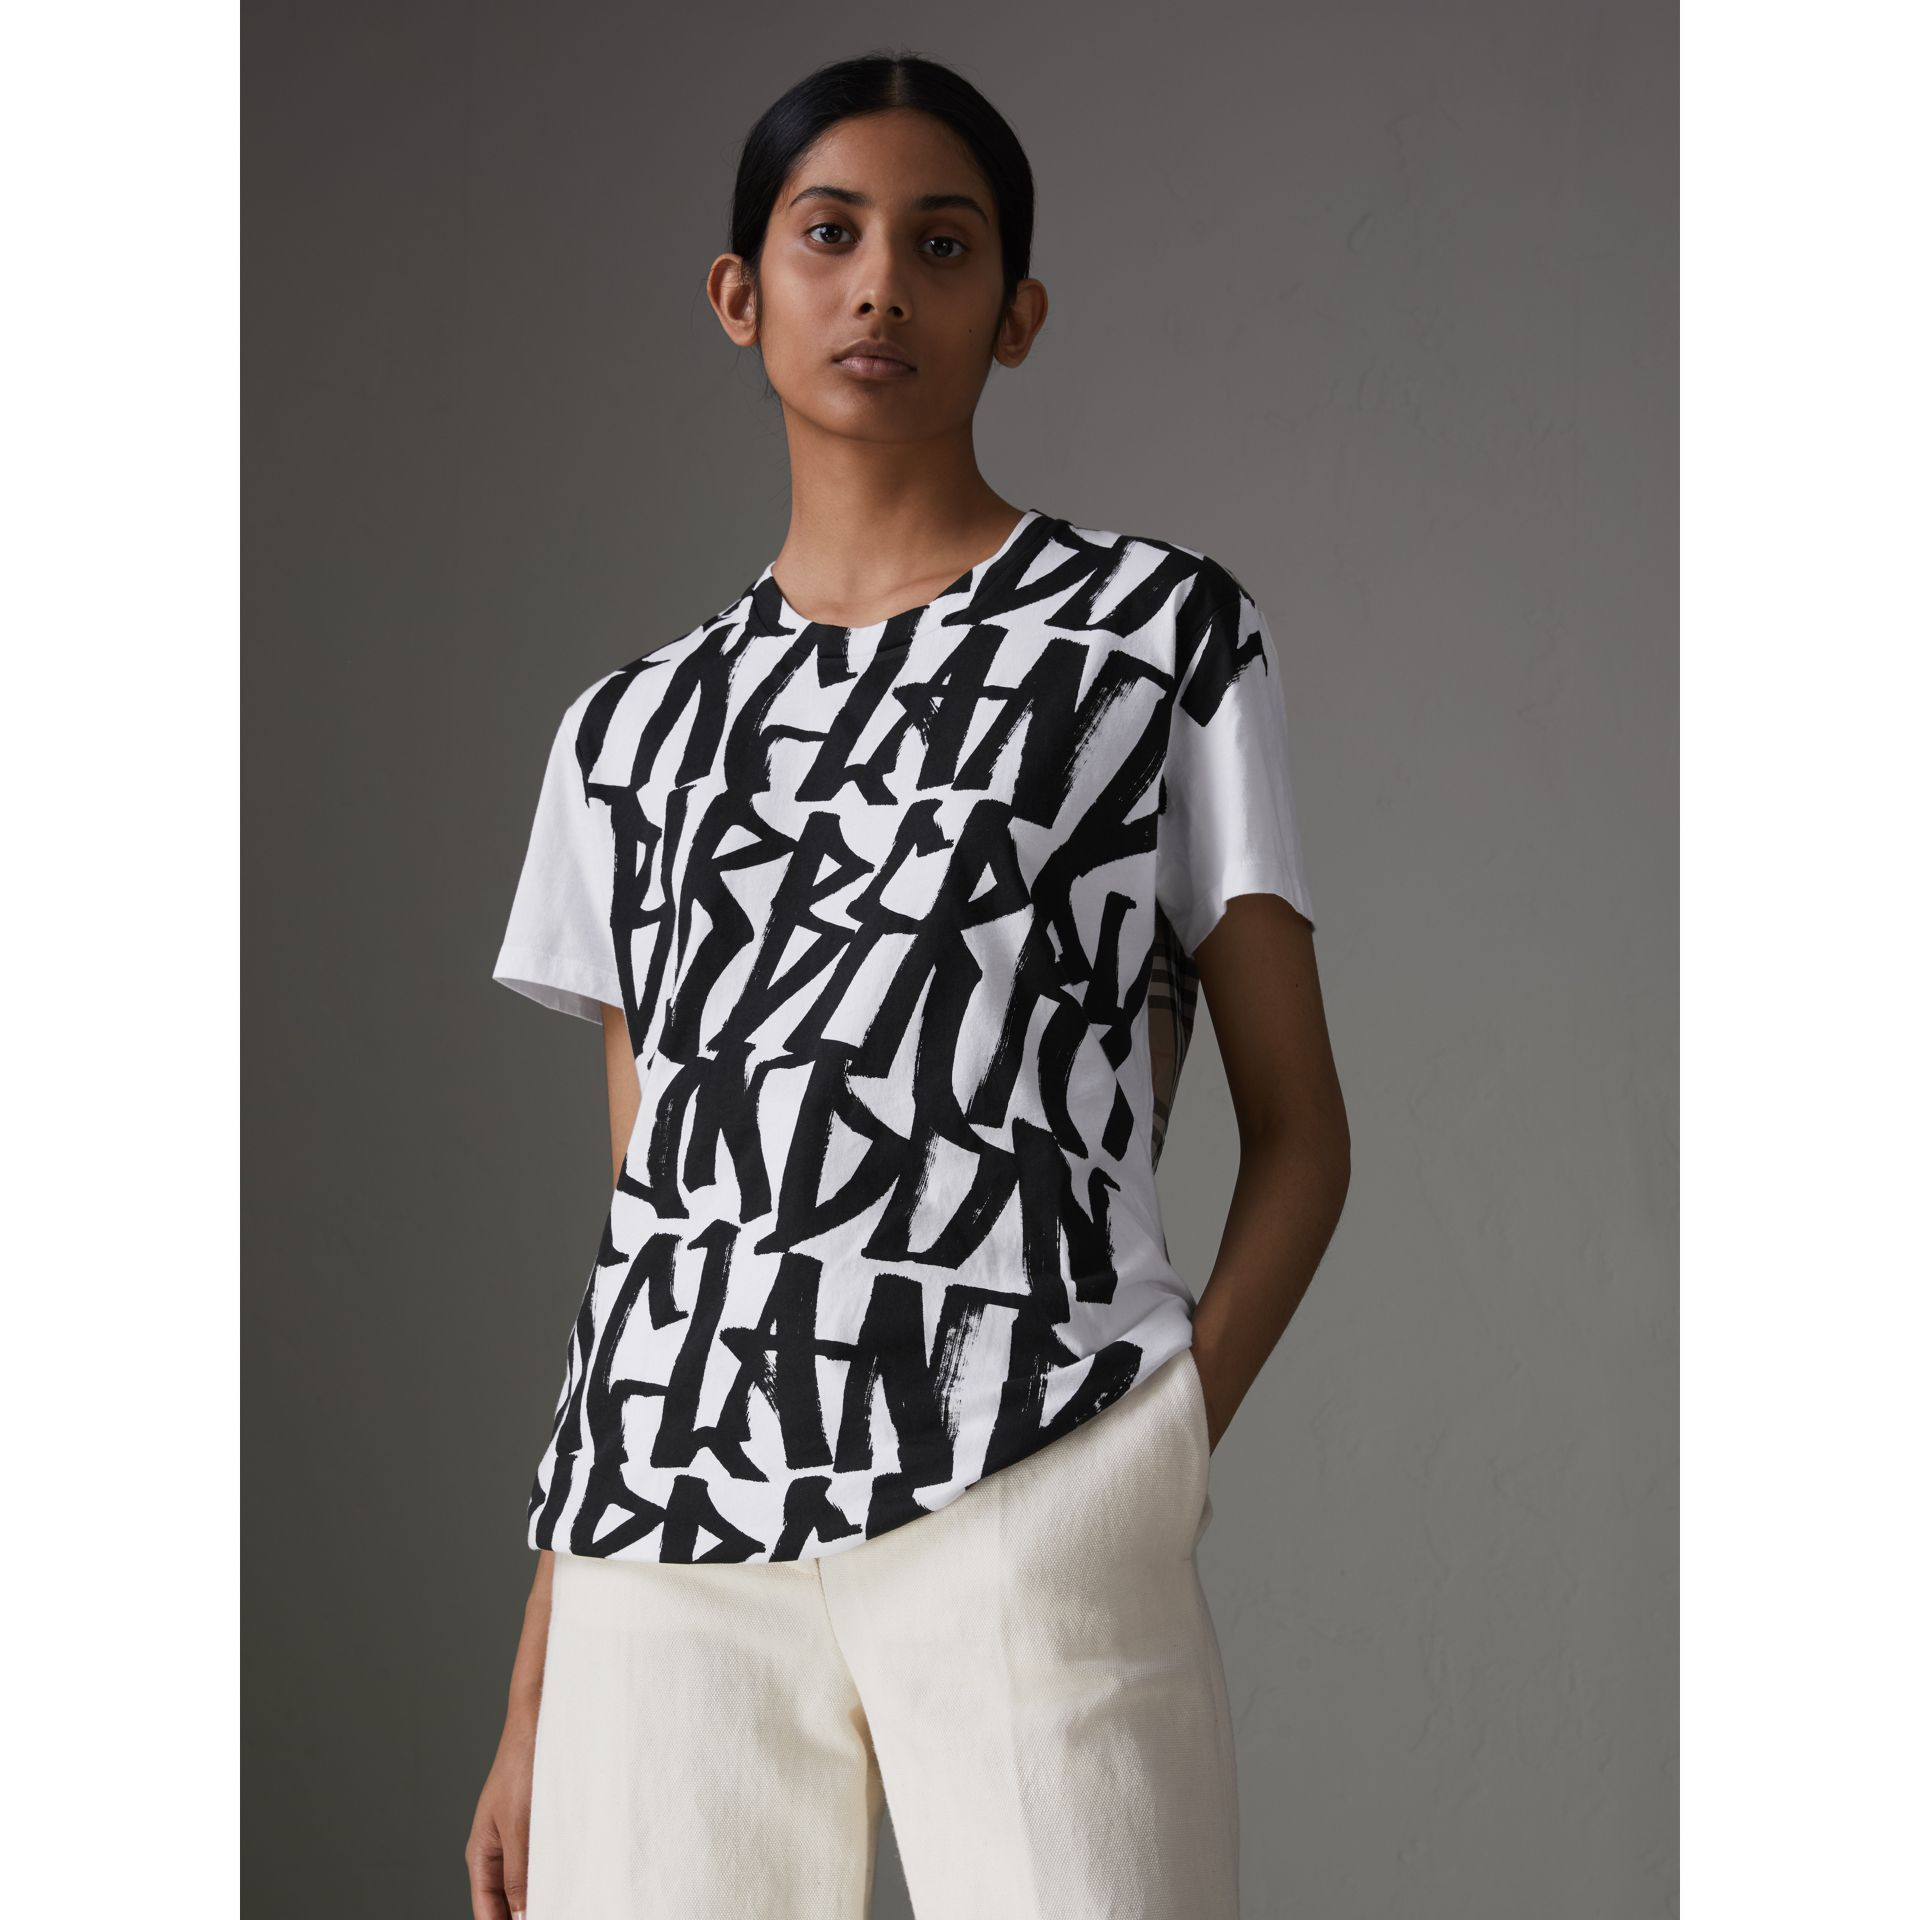 Graffiti Print and Vintage Check T-shirt in White - Women | Burberry Australia - gallery image 4